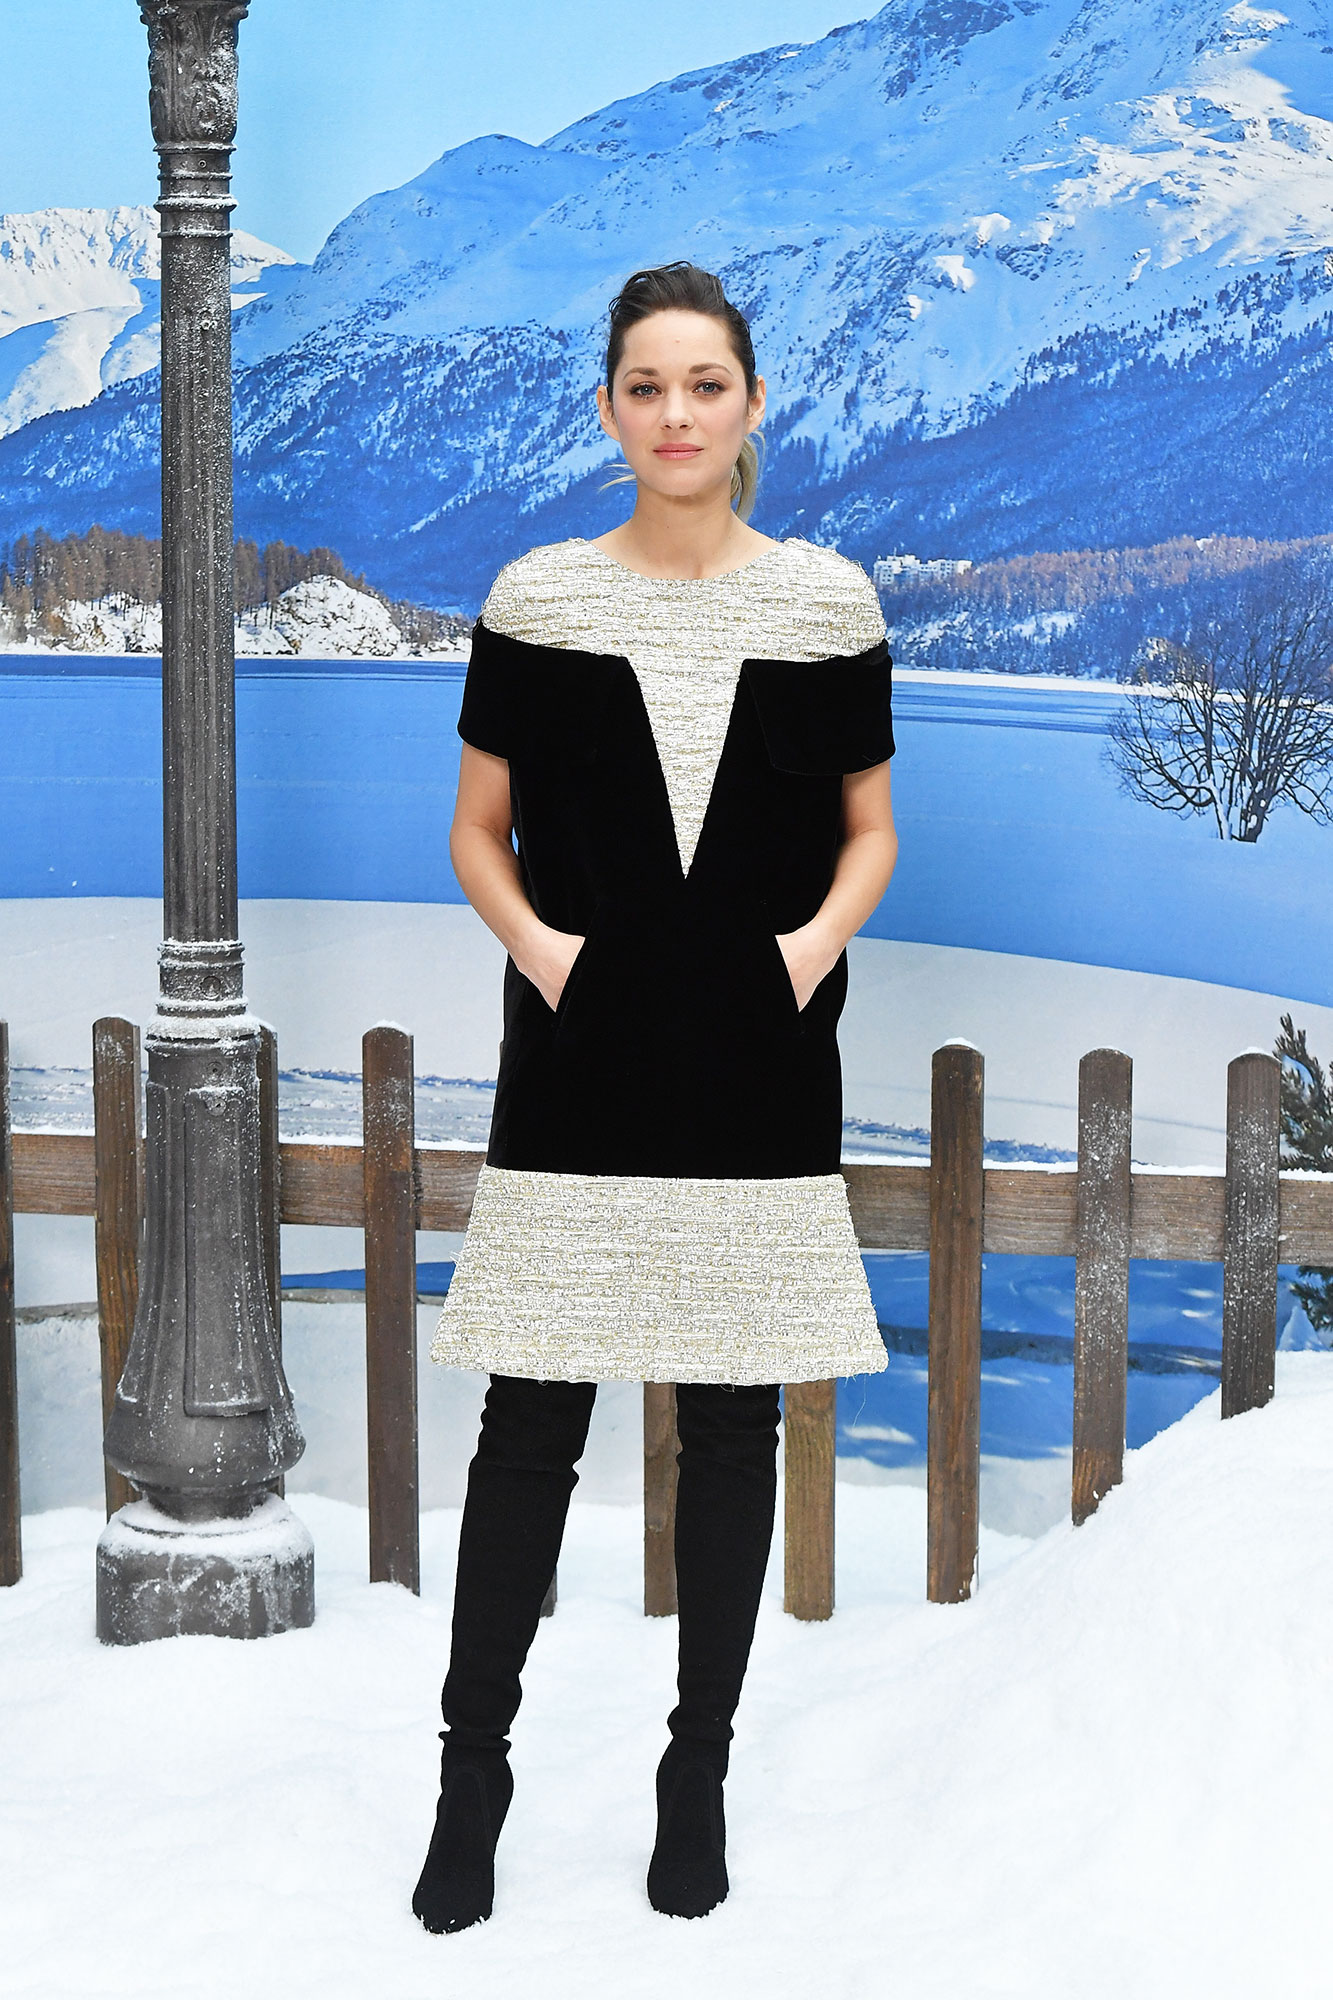 Marion Cotillard Stars Continue to Wow on Day 9 of Paris Fashion Week - The French beauty created the perfect illusion in her tweed mini that appeared to be two pieces at Chanel on Tuesday, March 5.